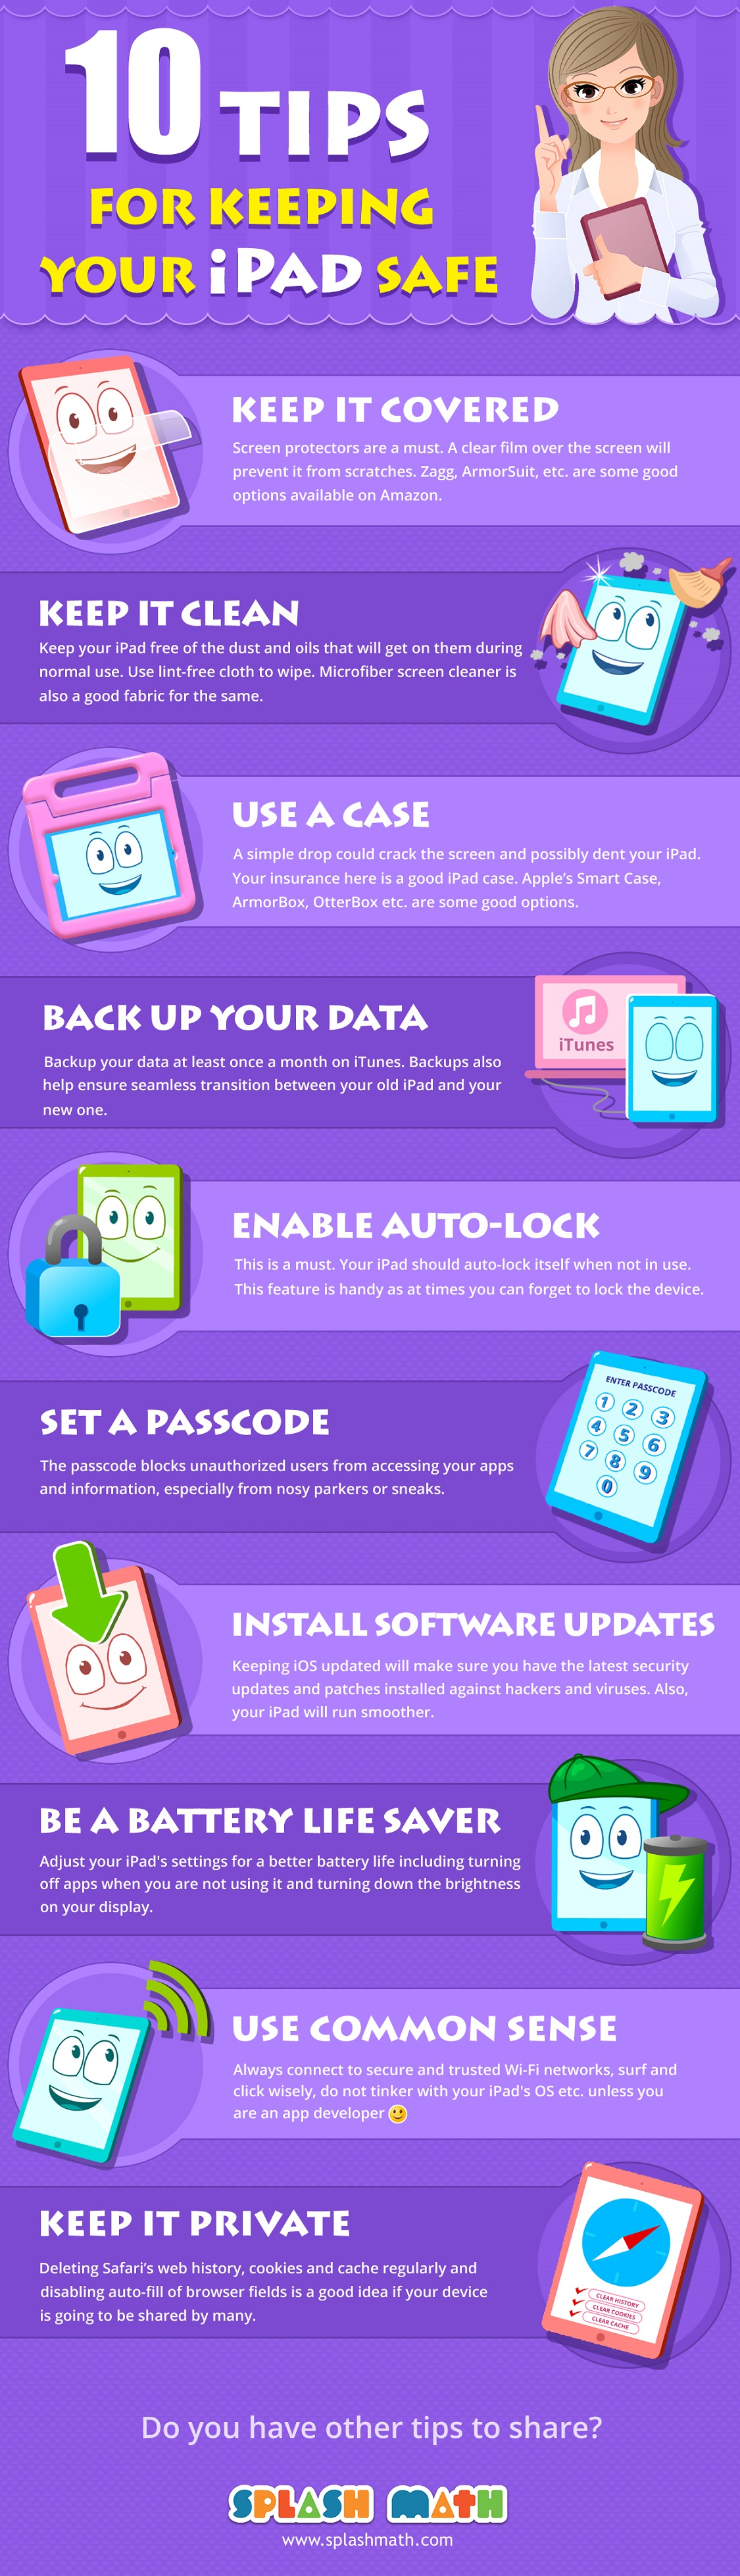 10 Tips for Keeping Your iPad Safe - Infographic